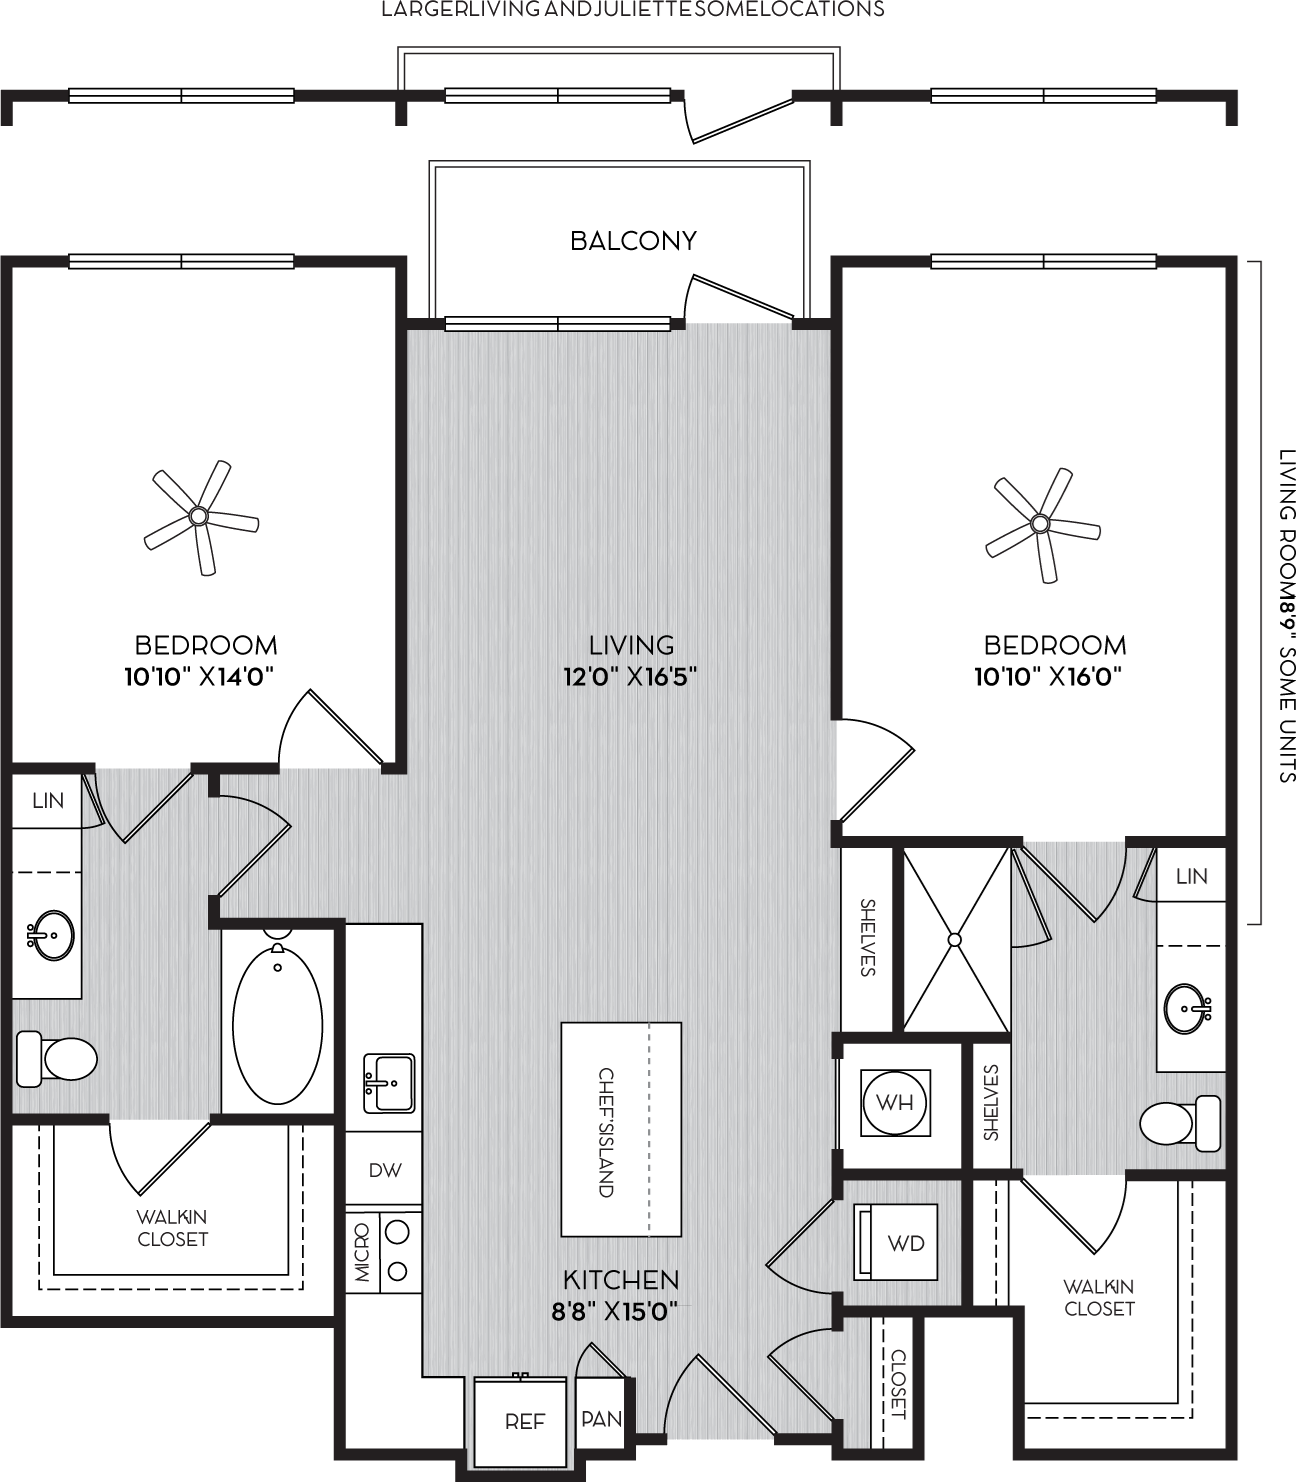 B-1a Two Bedroom Floor Plan with Balcony at Apartments in Vinings